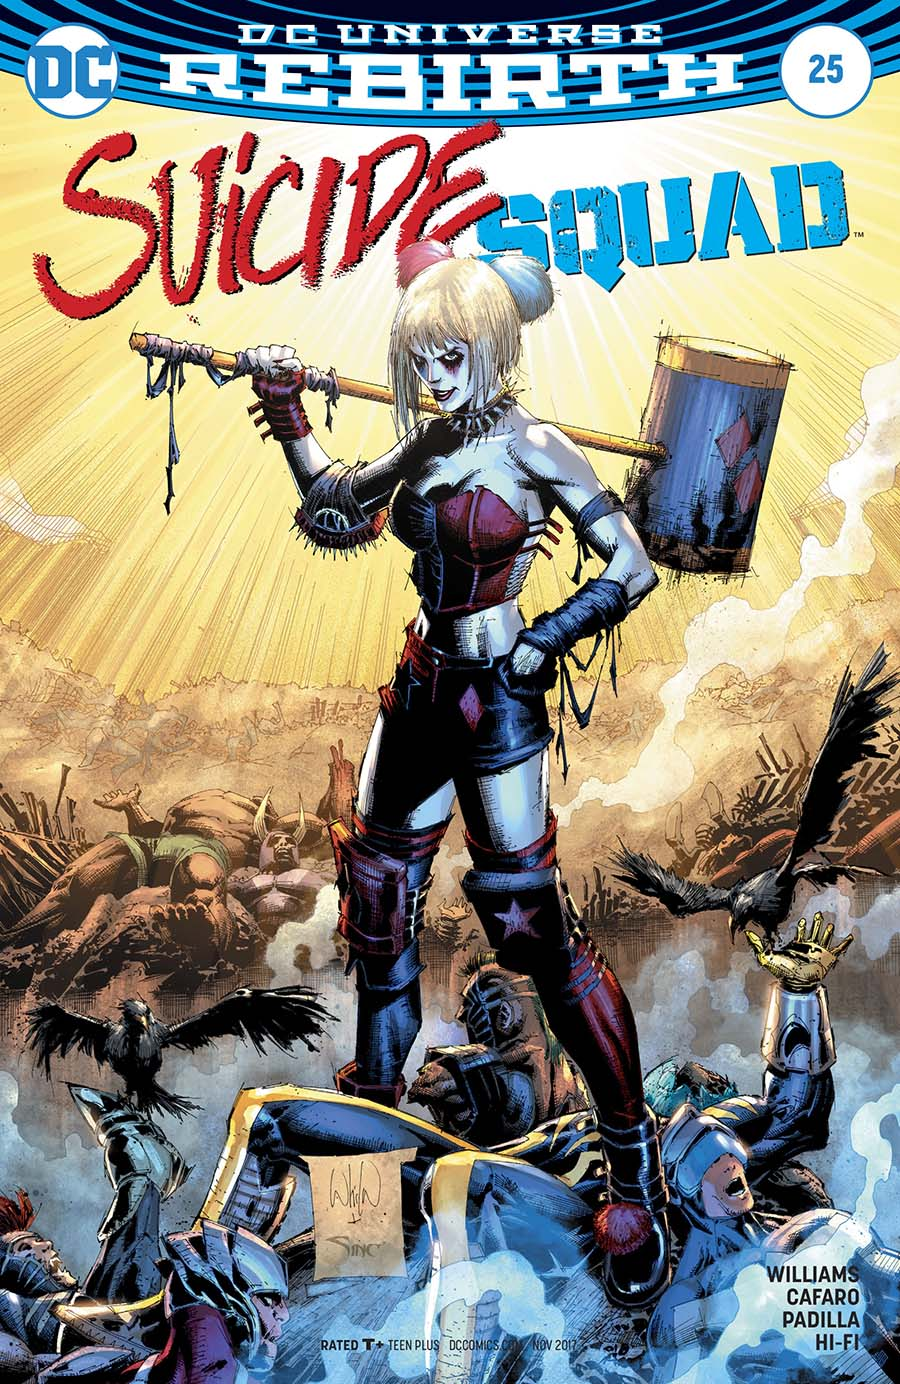 Suicide Squad Vol 4 #25 Cover B Variant Whilce Portacio Cover